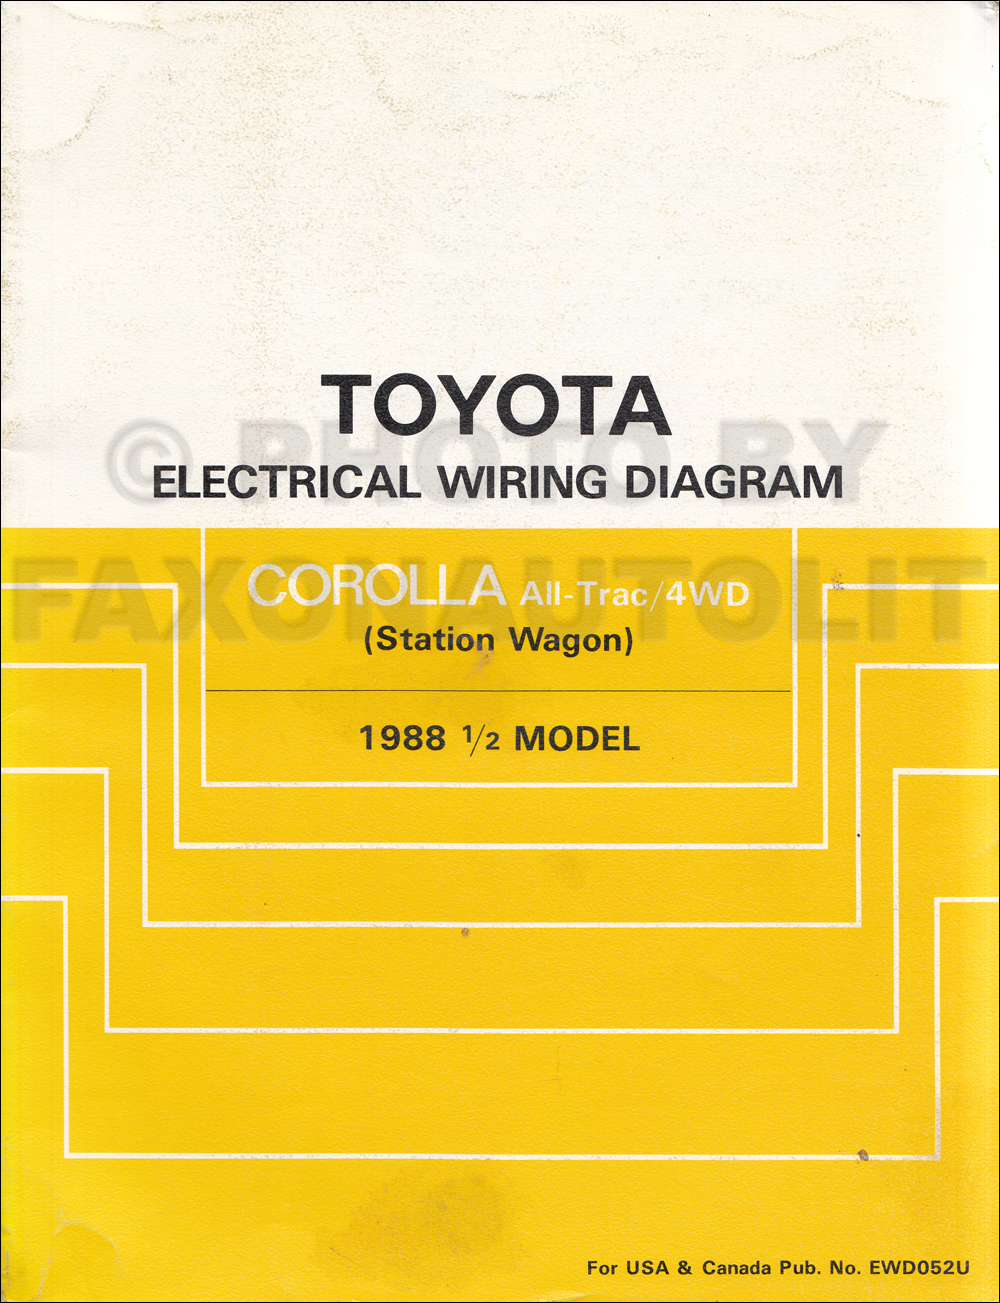 1998 Toyota Avalon Stereo Wiring 1988 Corolla All Trac 4wd Station Wagon Diagram Manual Original